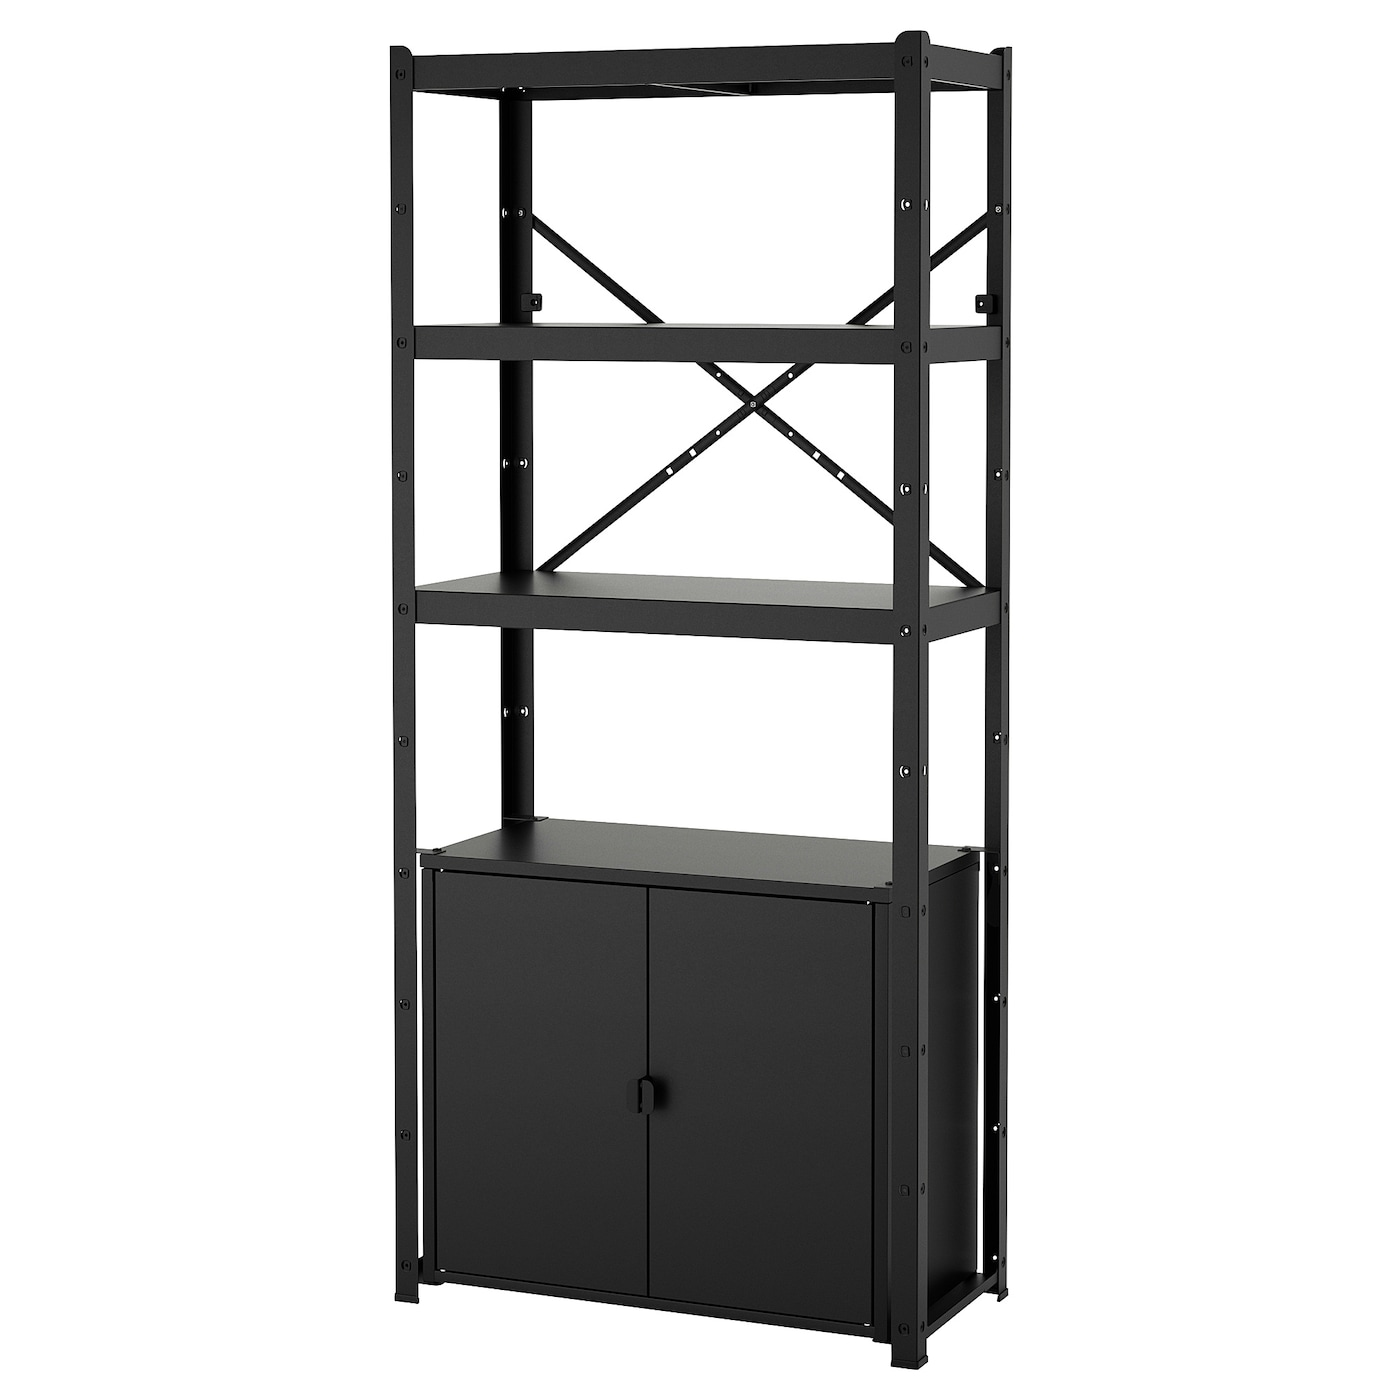 IKEA BROR shelving unit with cabinet Perfect for big heavy items like tools and books.